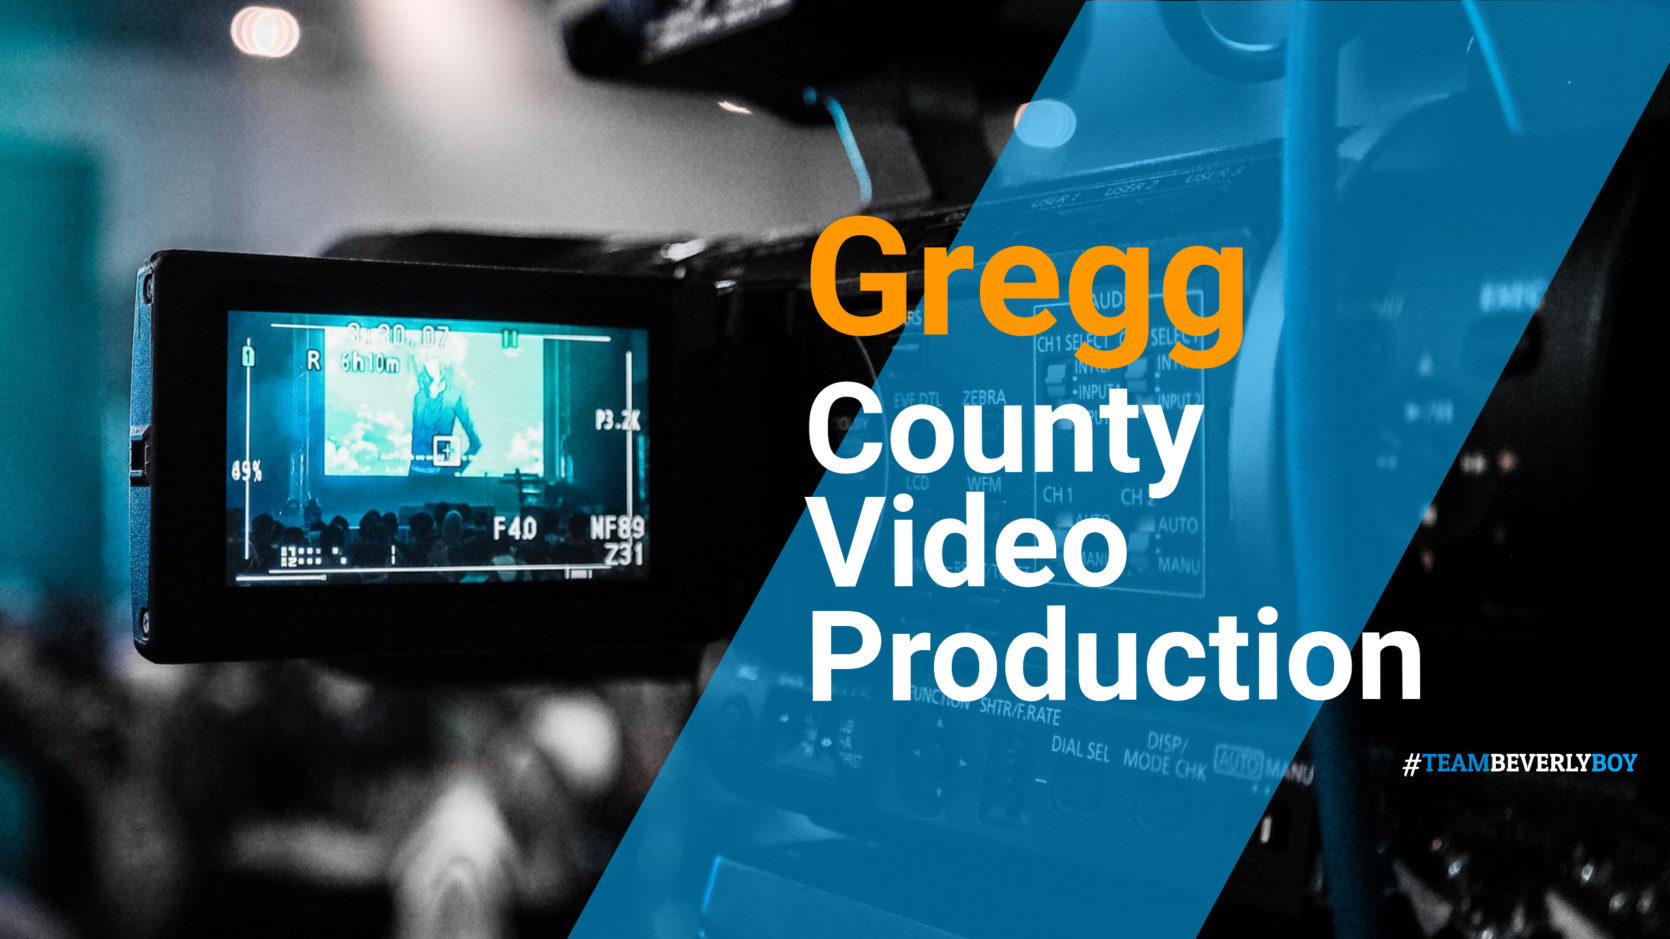 Gregg county Video Production